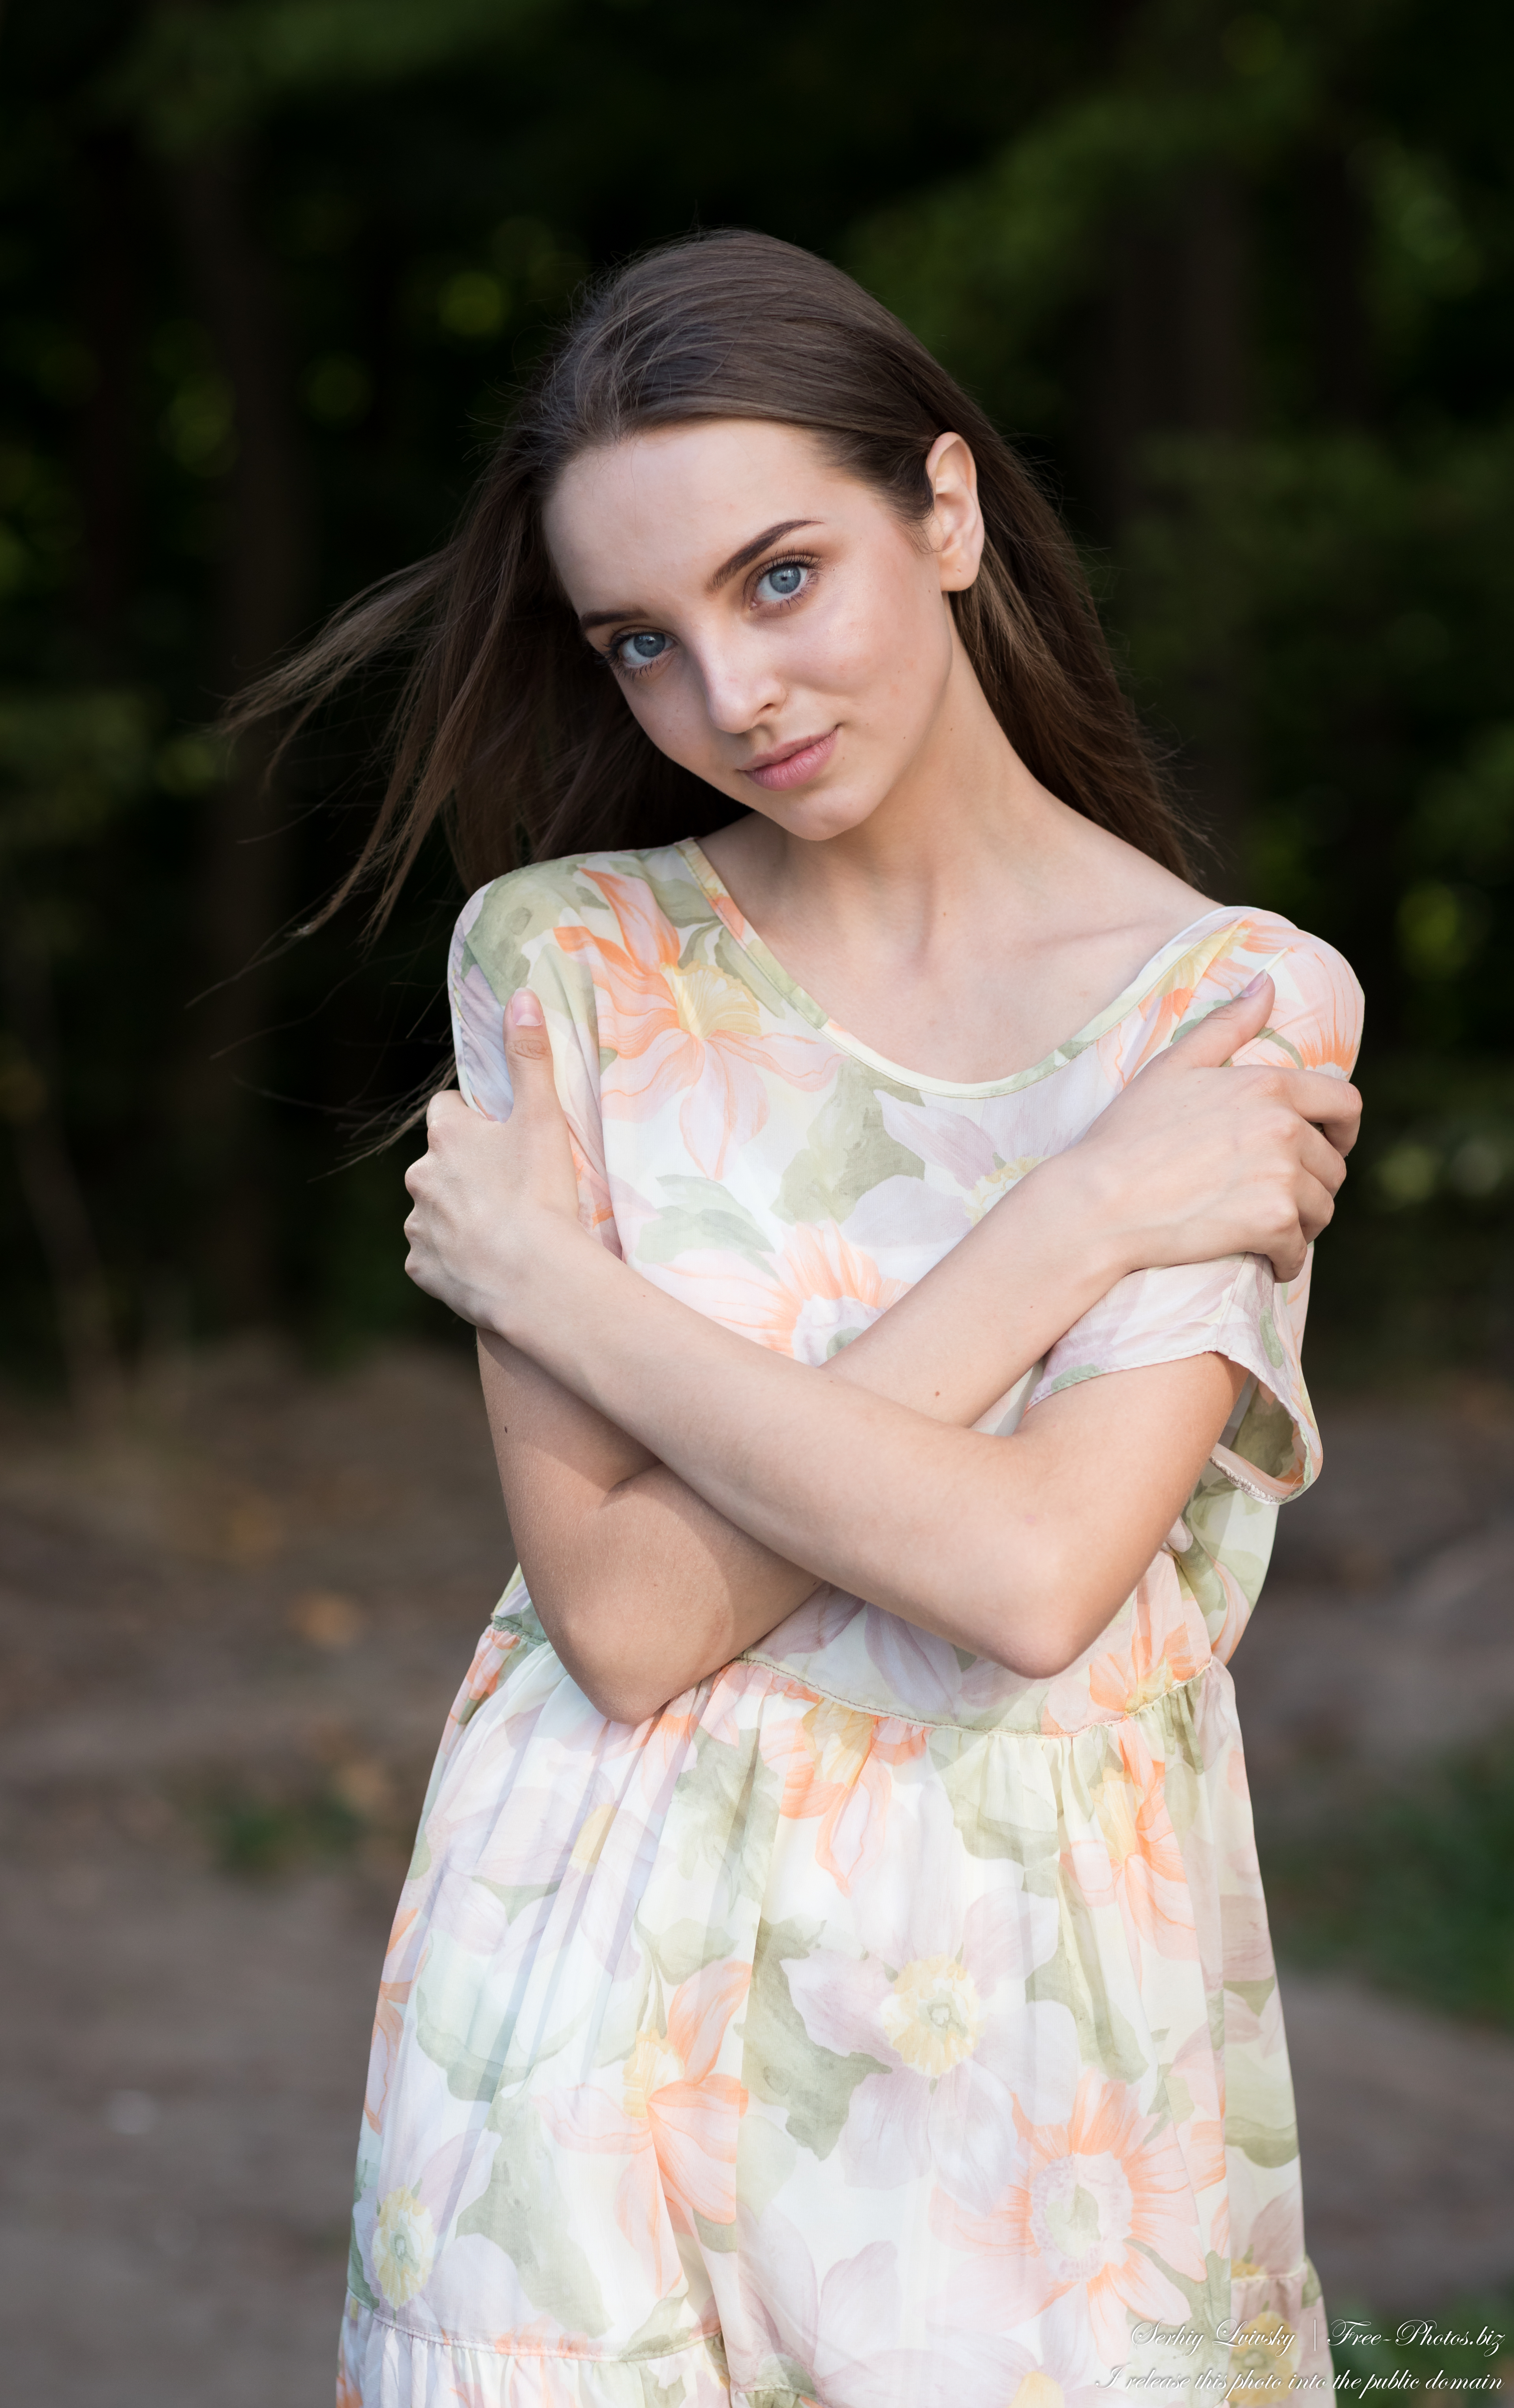 vika_a_17-year-old_girl_photographed_by_serhiy_lvivsky_in_sept_2020_10